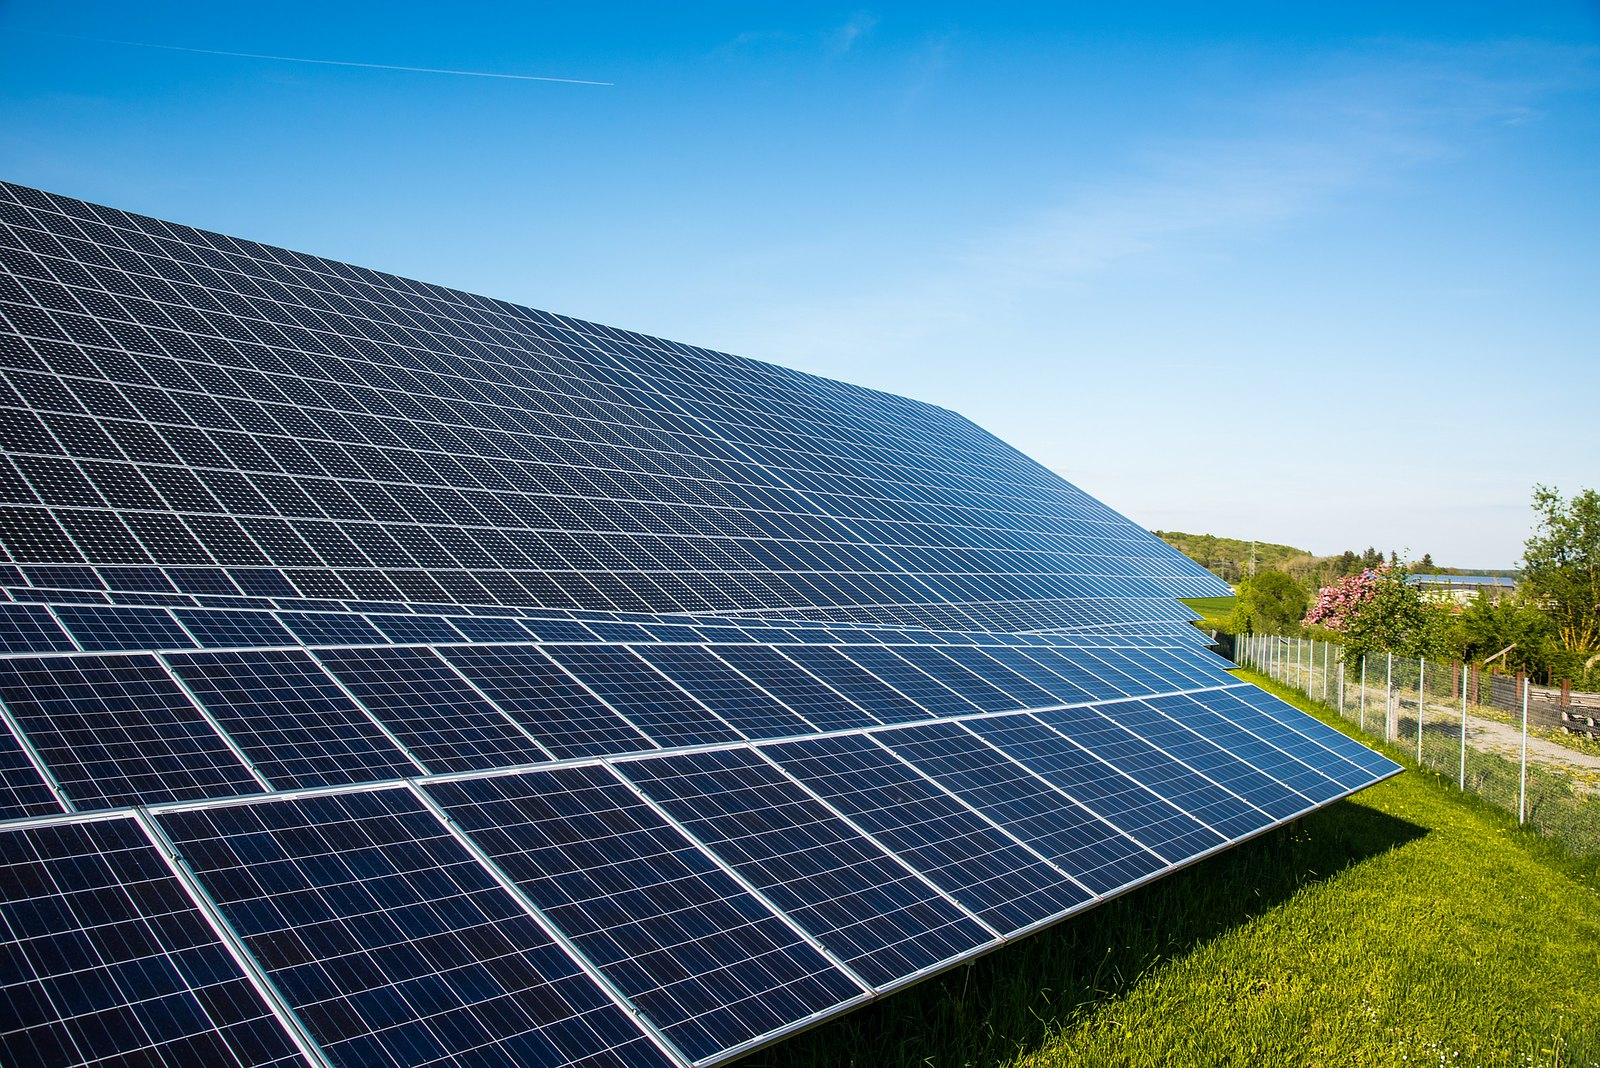 Hardin Solar Energy Center II, which will be located in Marion, Roundhead, and McDonald townships, will have a total installed generation capacity of 170MW, and will also include a battery storage system of up to 60MW. Image: Zak Zak / Flickr